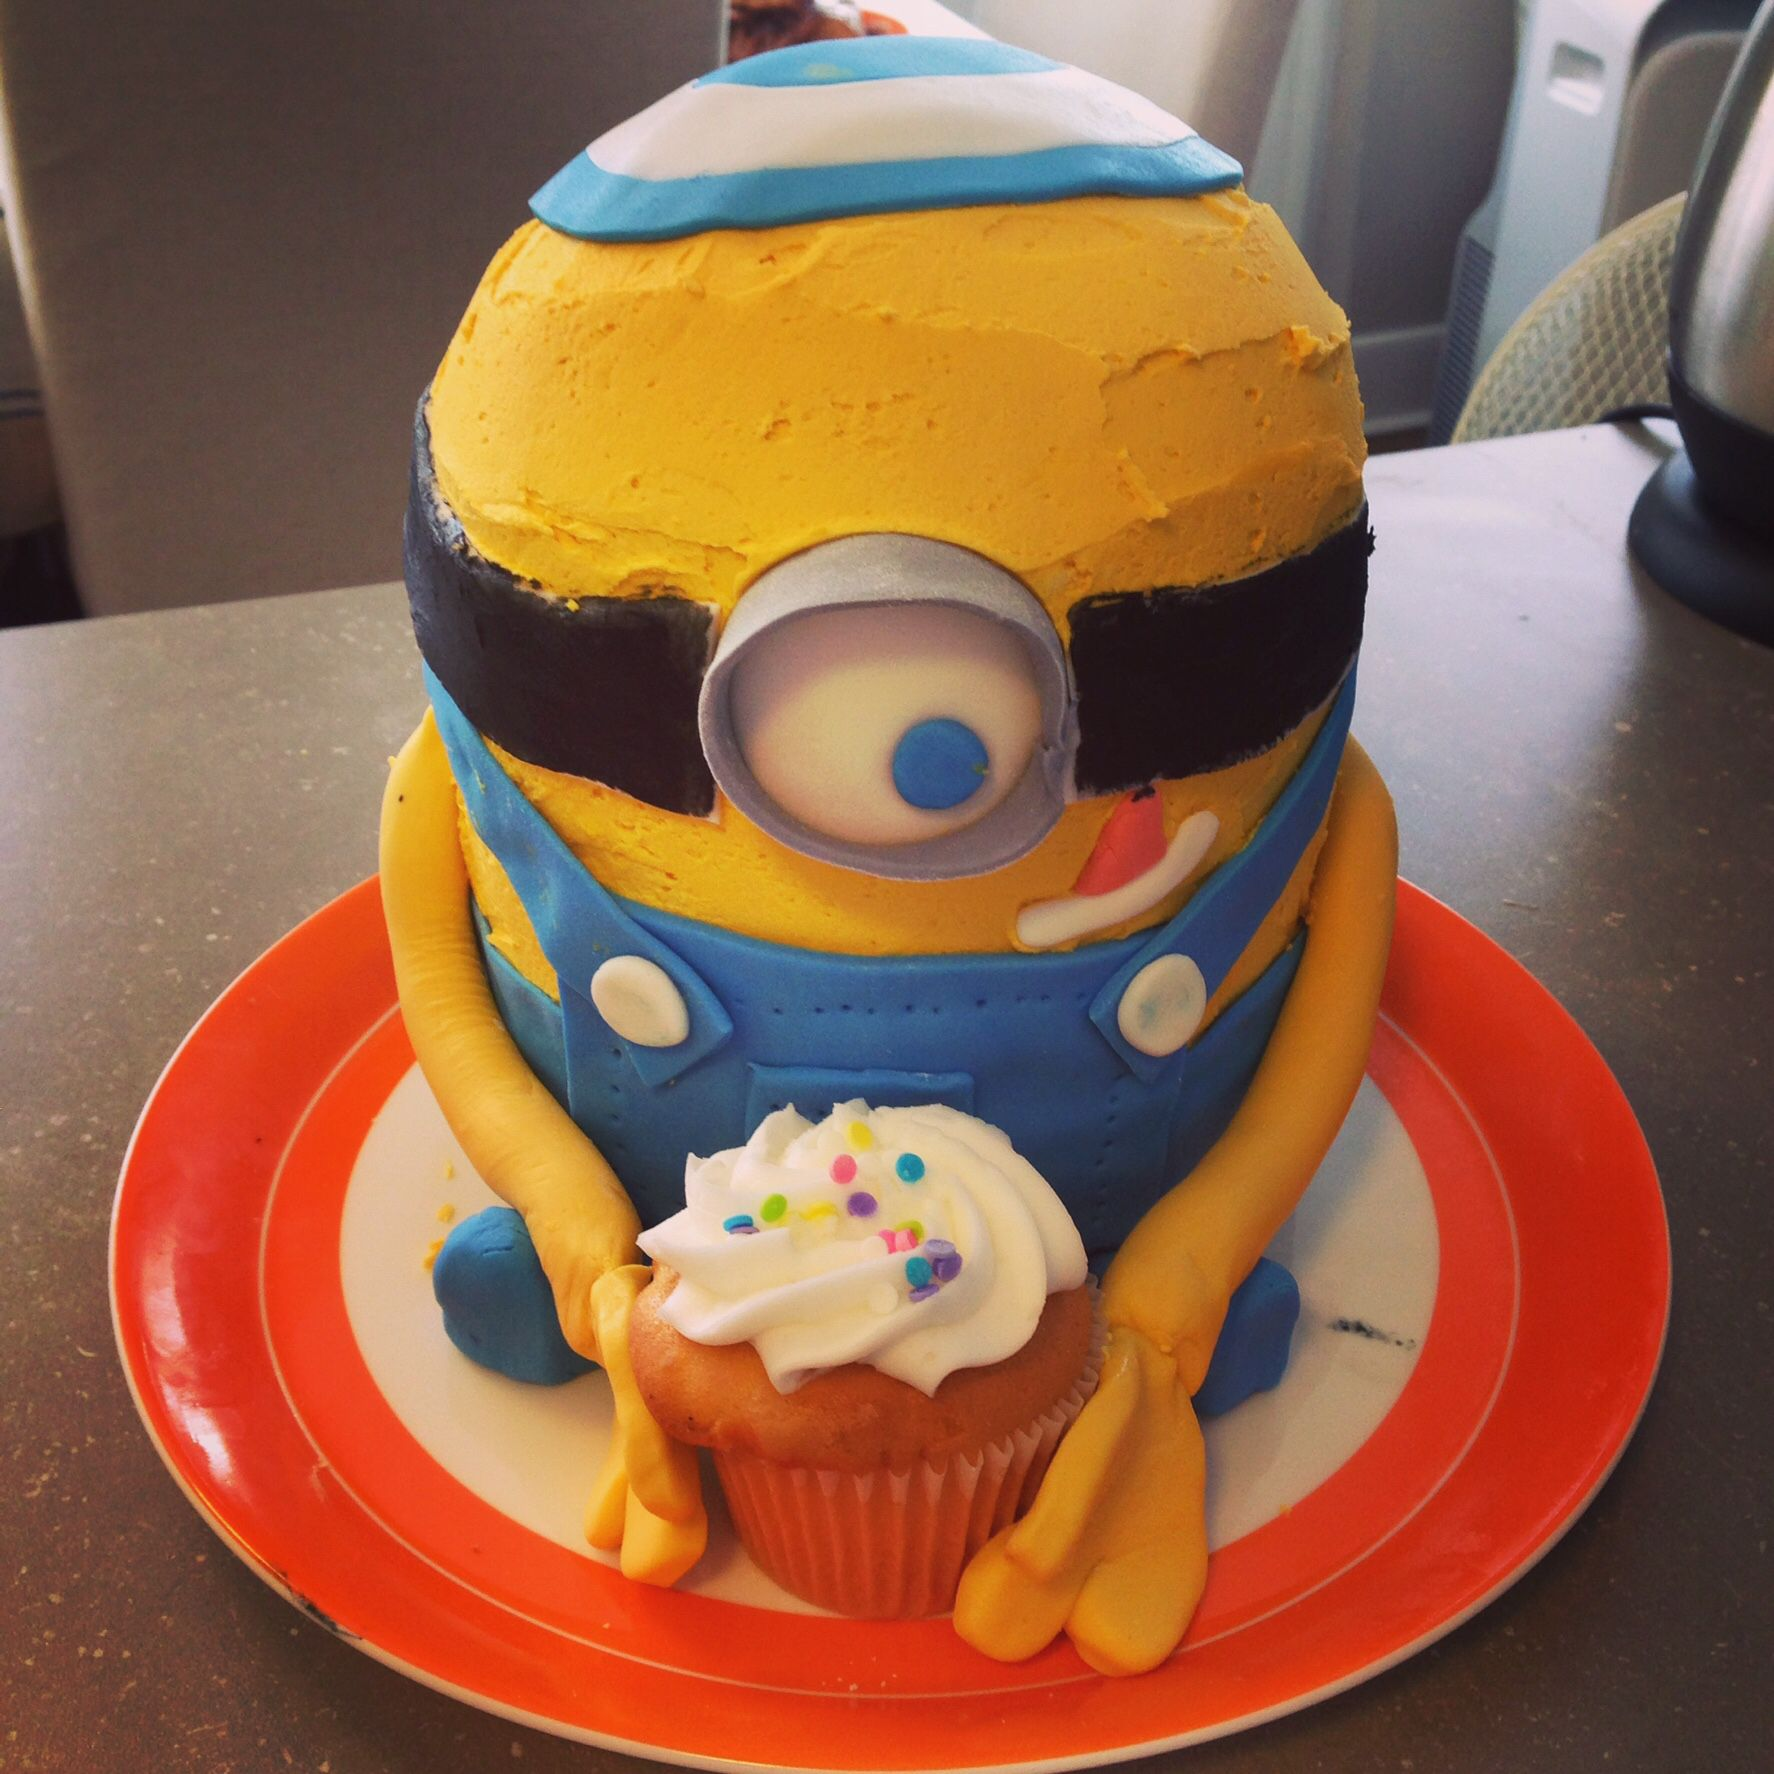 A successful Minion who goes to Minyan birthday cake recipes